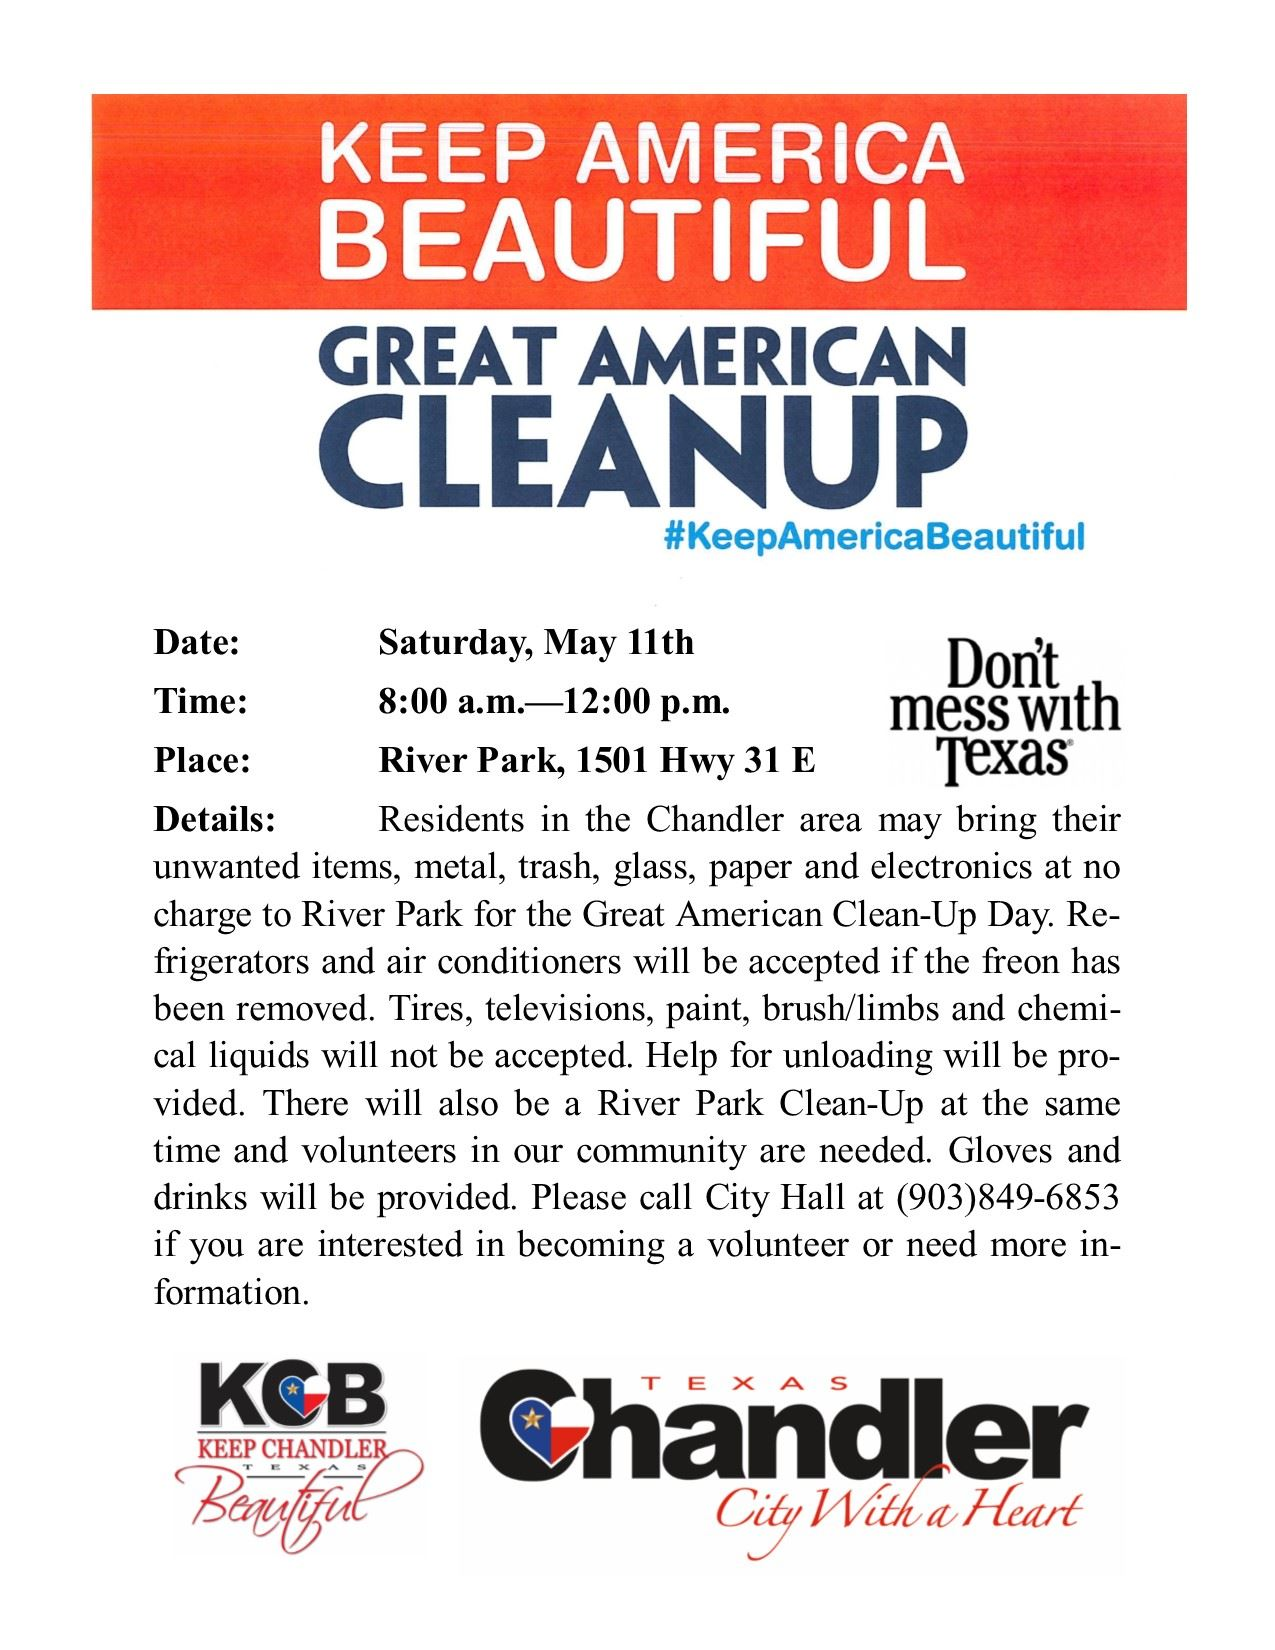 Great American Cleanup Flyer